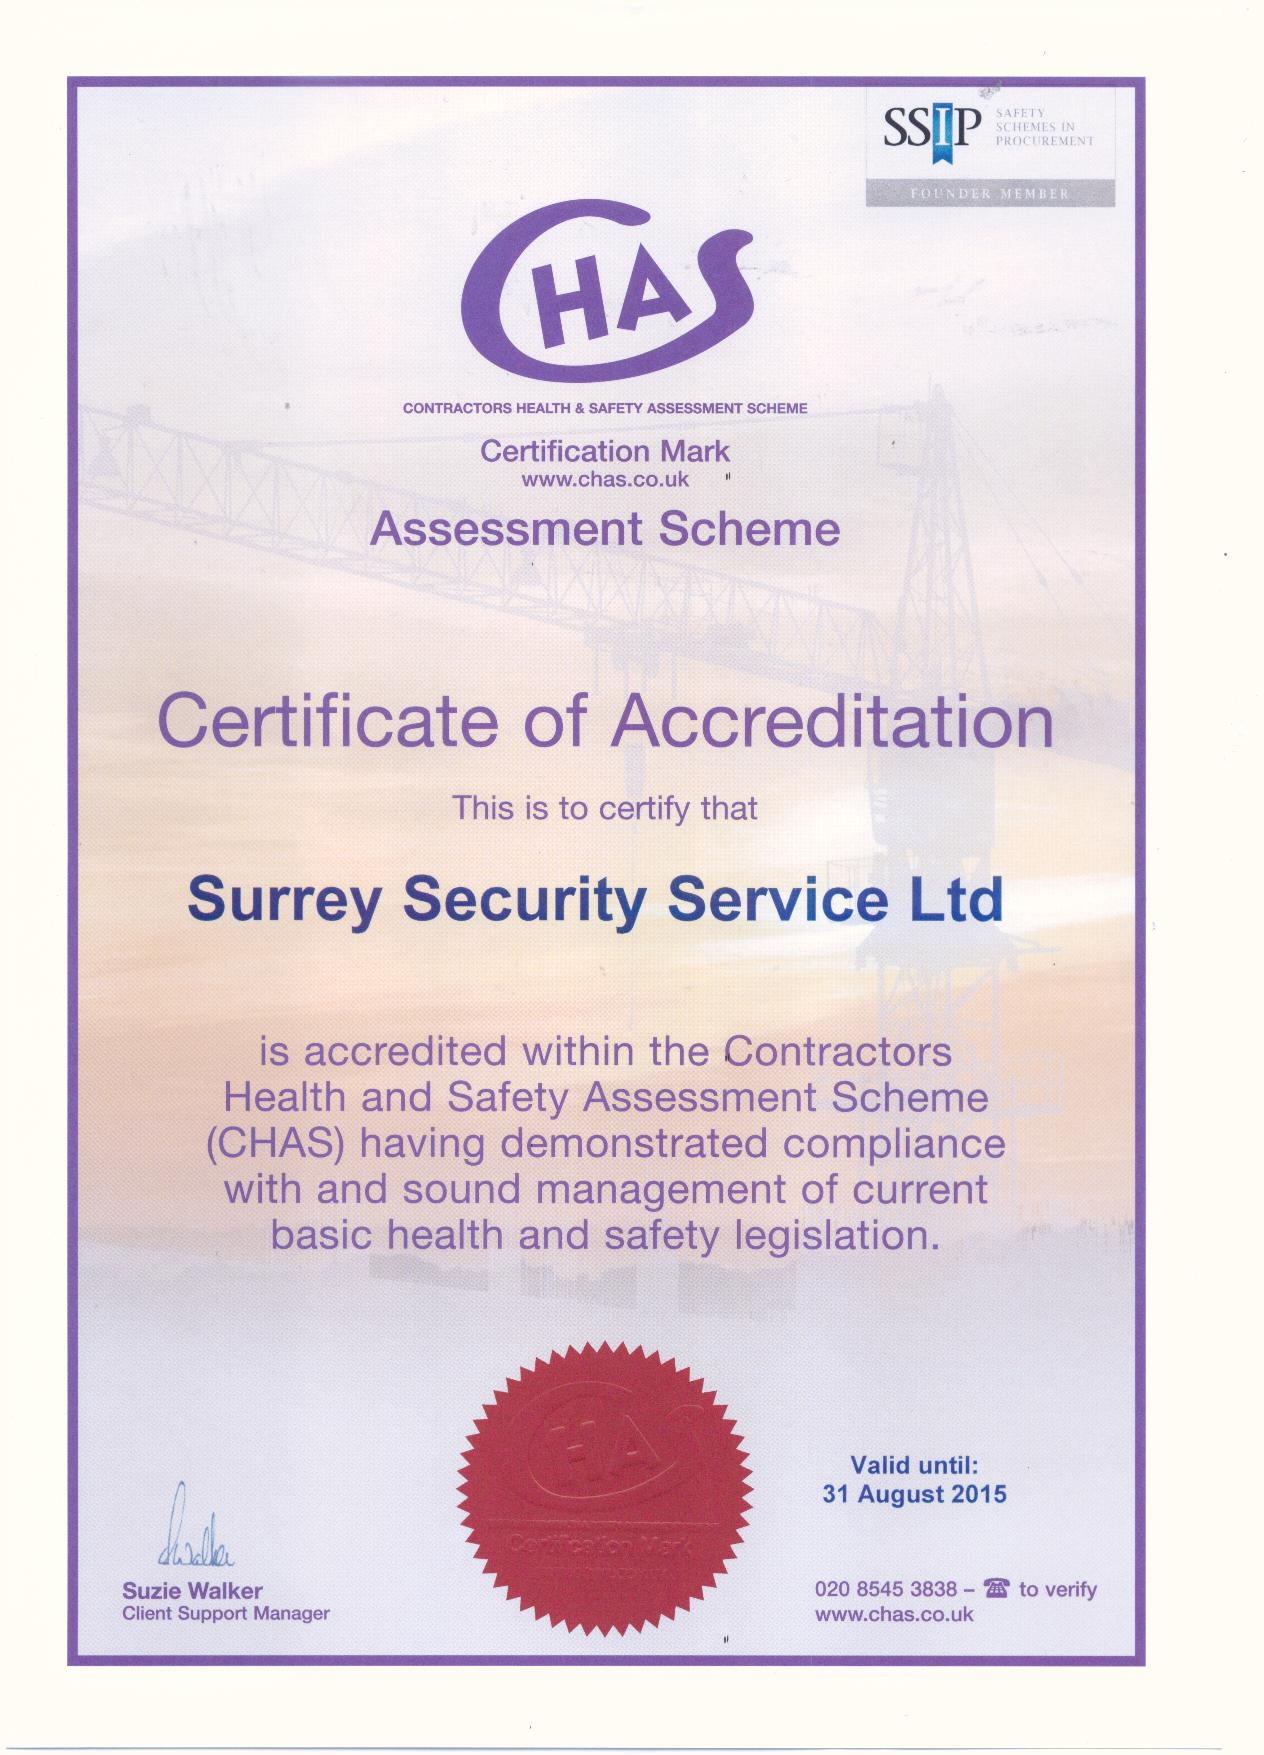 Our Accreditation Certificates